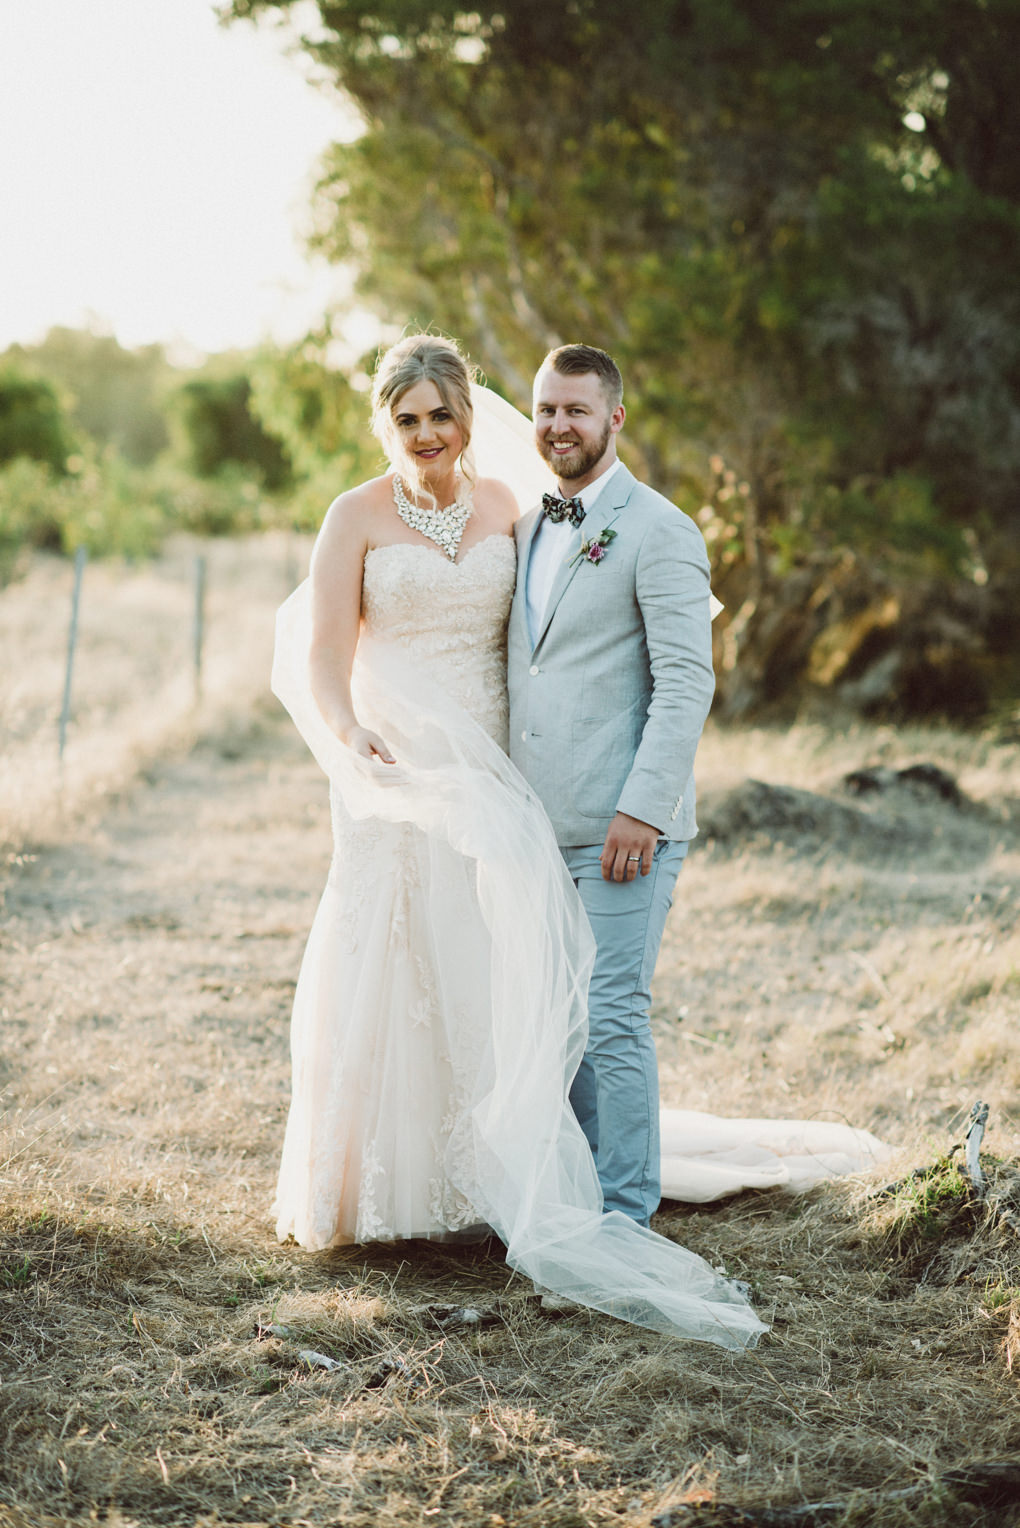 Wedding Photos Margaret River Dunsborough Perth Boho Wedding inspo